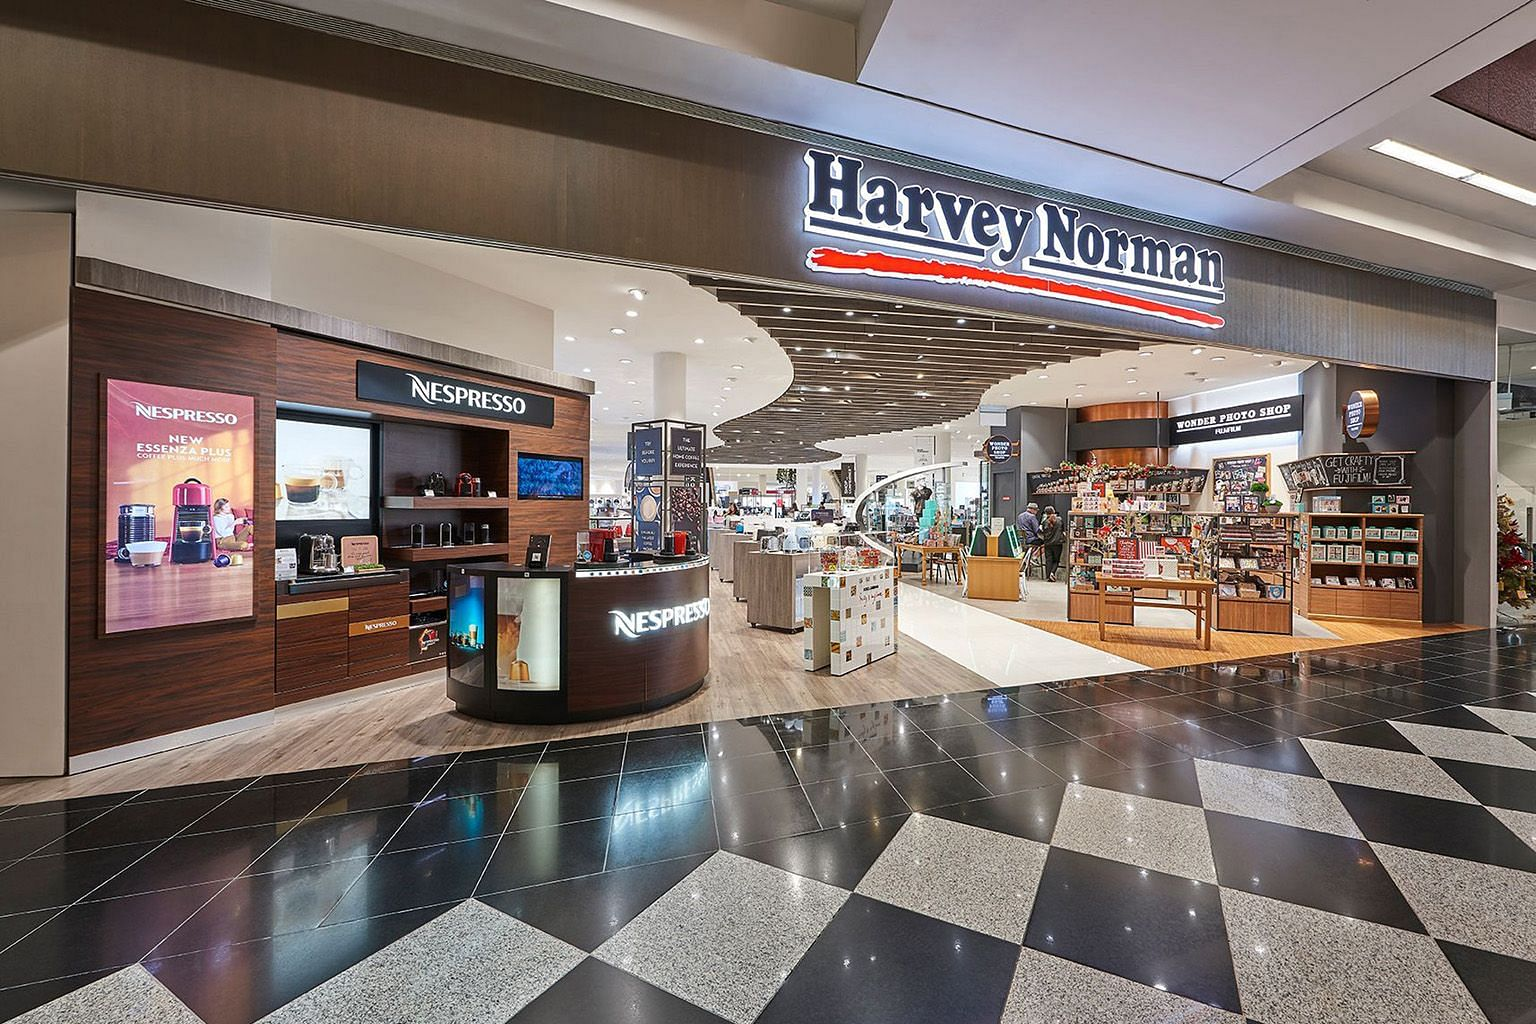 Electronics retailer Harvey Norman will be setting up a microsite offering computers and printers that students can purchase using their $500 e-grant from The Straits Times School Pocket Money Fund.